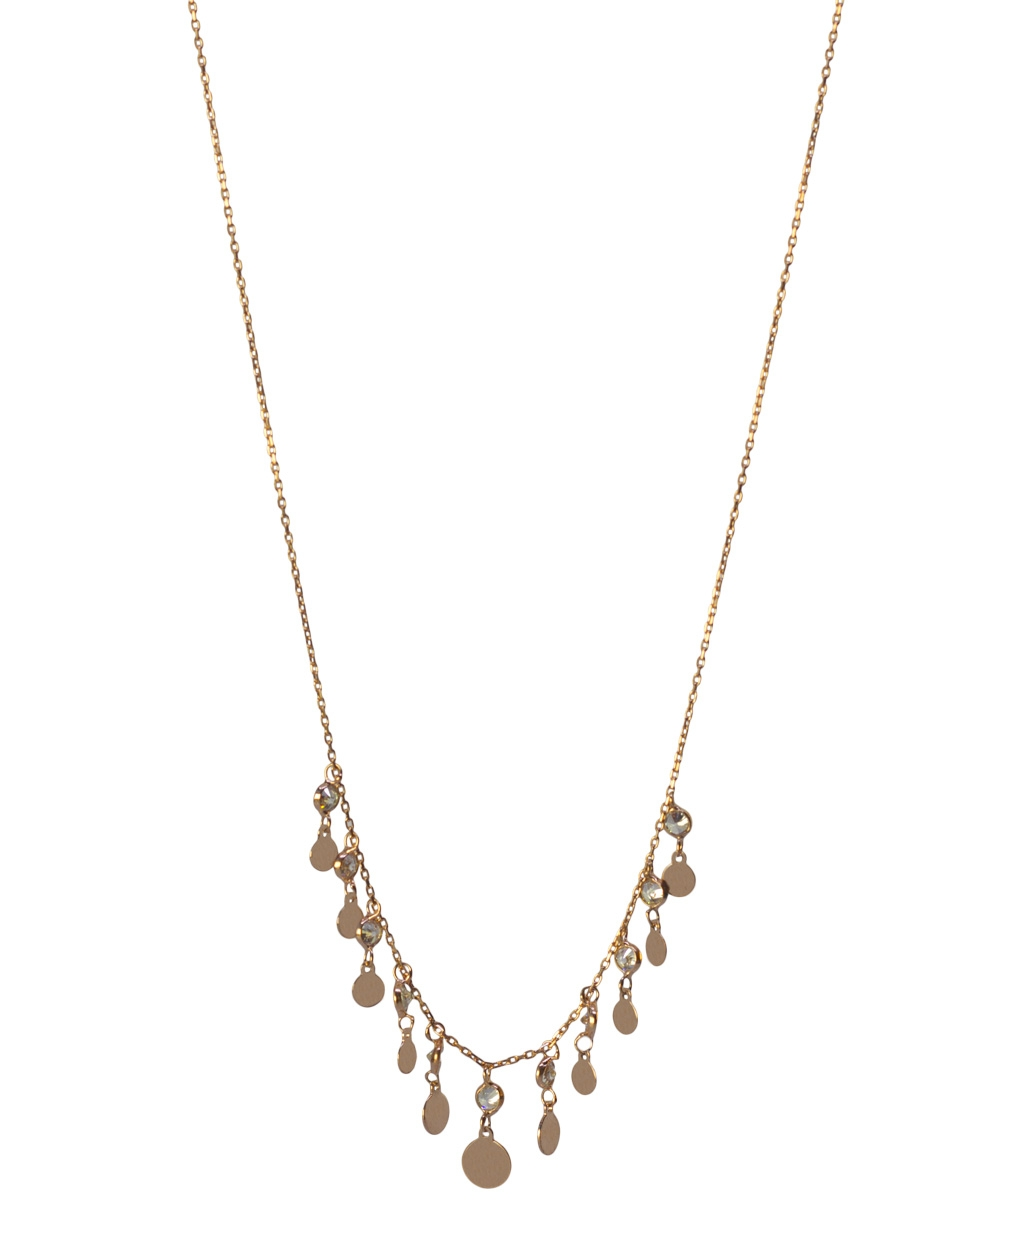 Gourmet Round Flake Silver Necklace